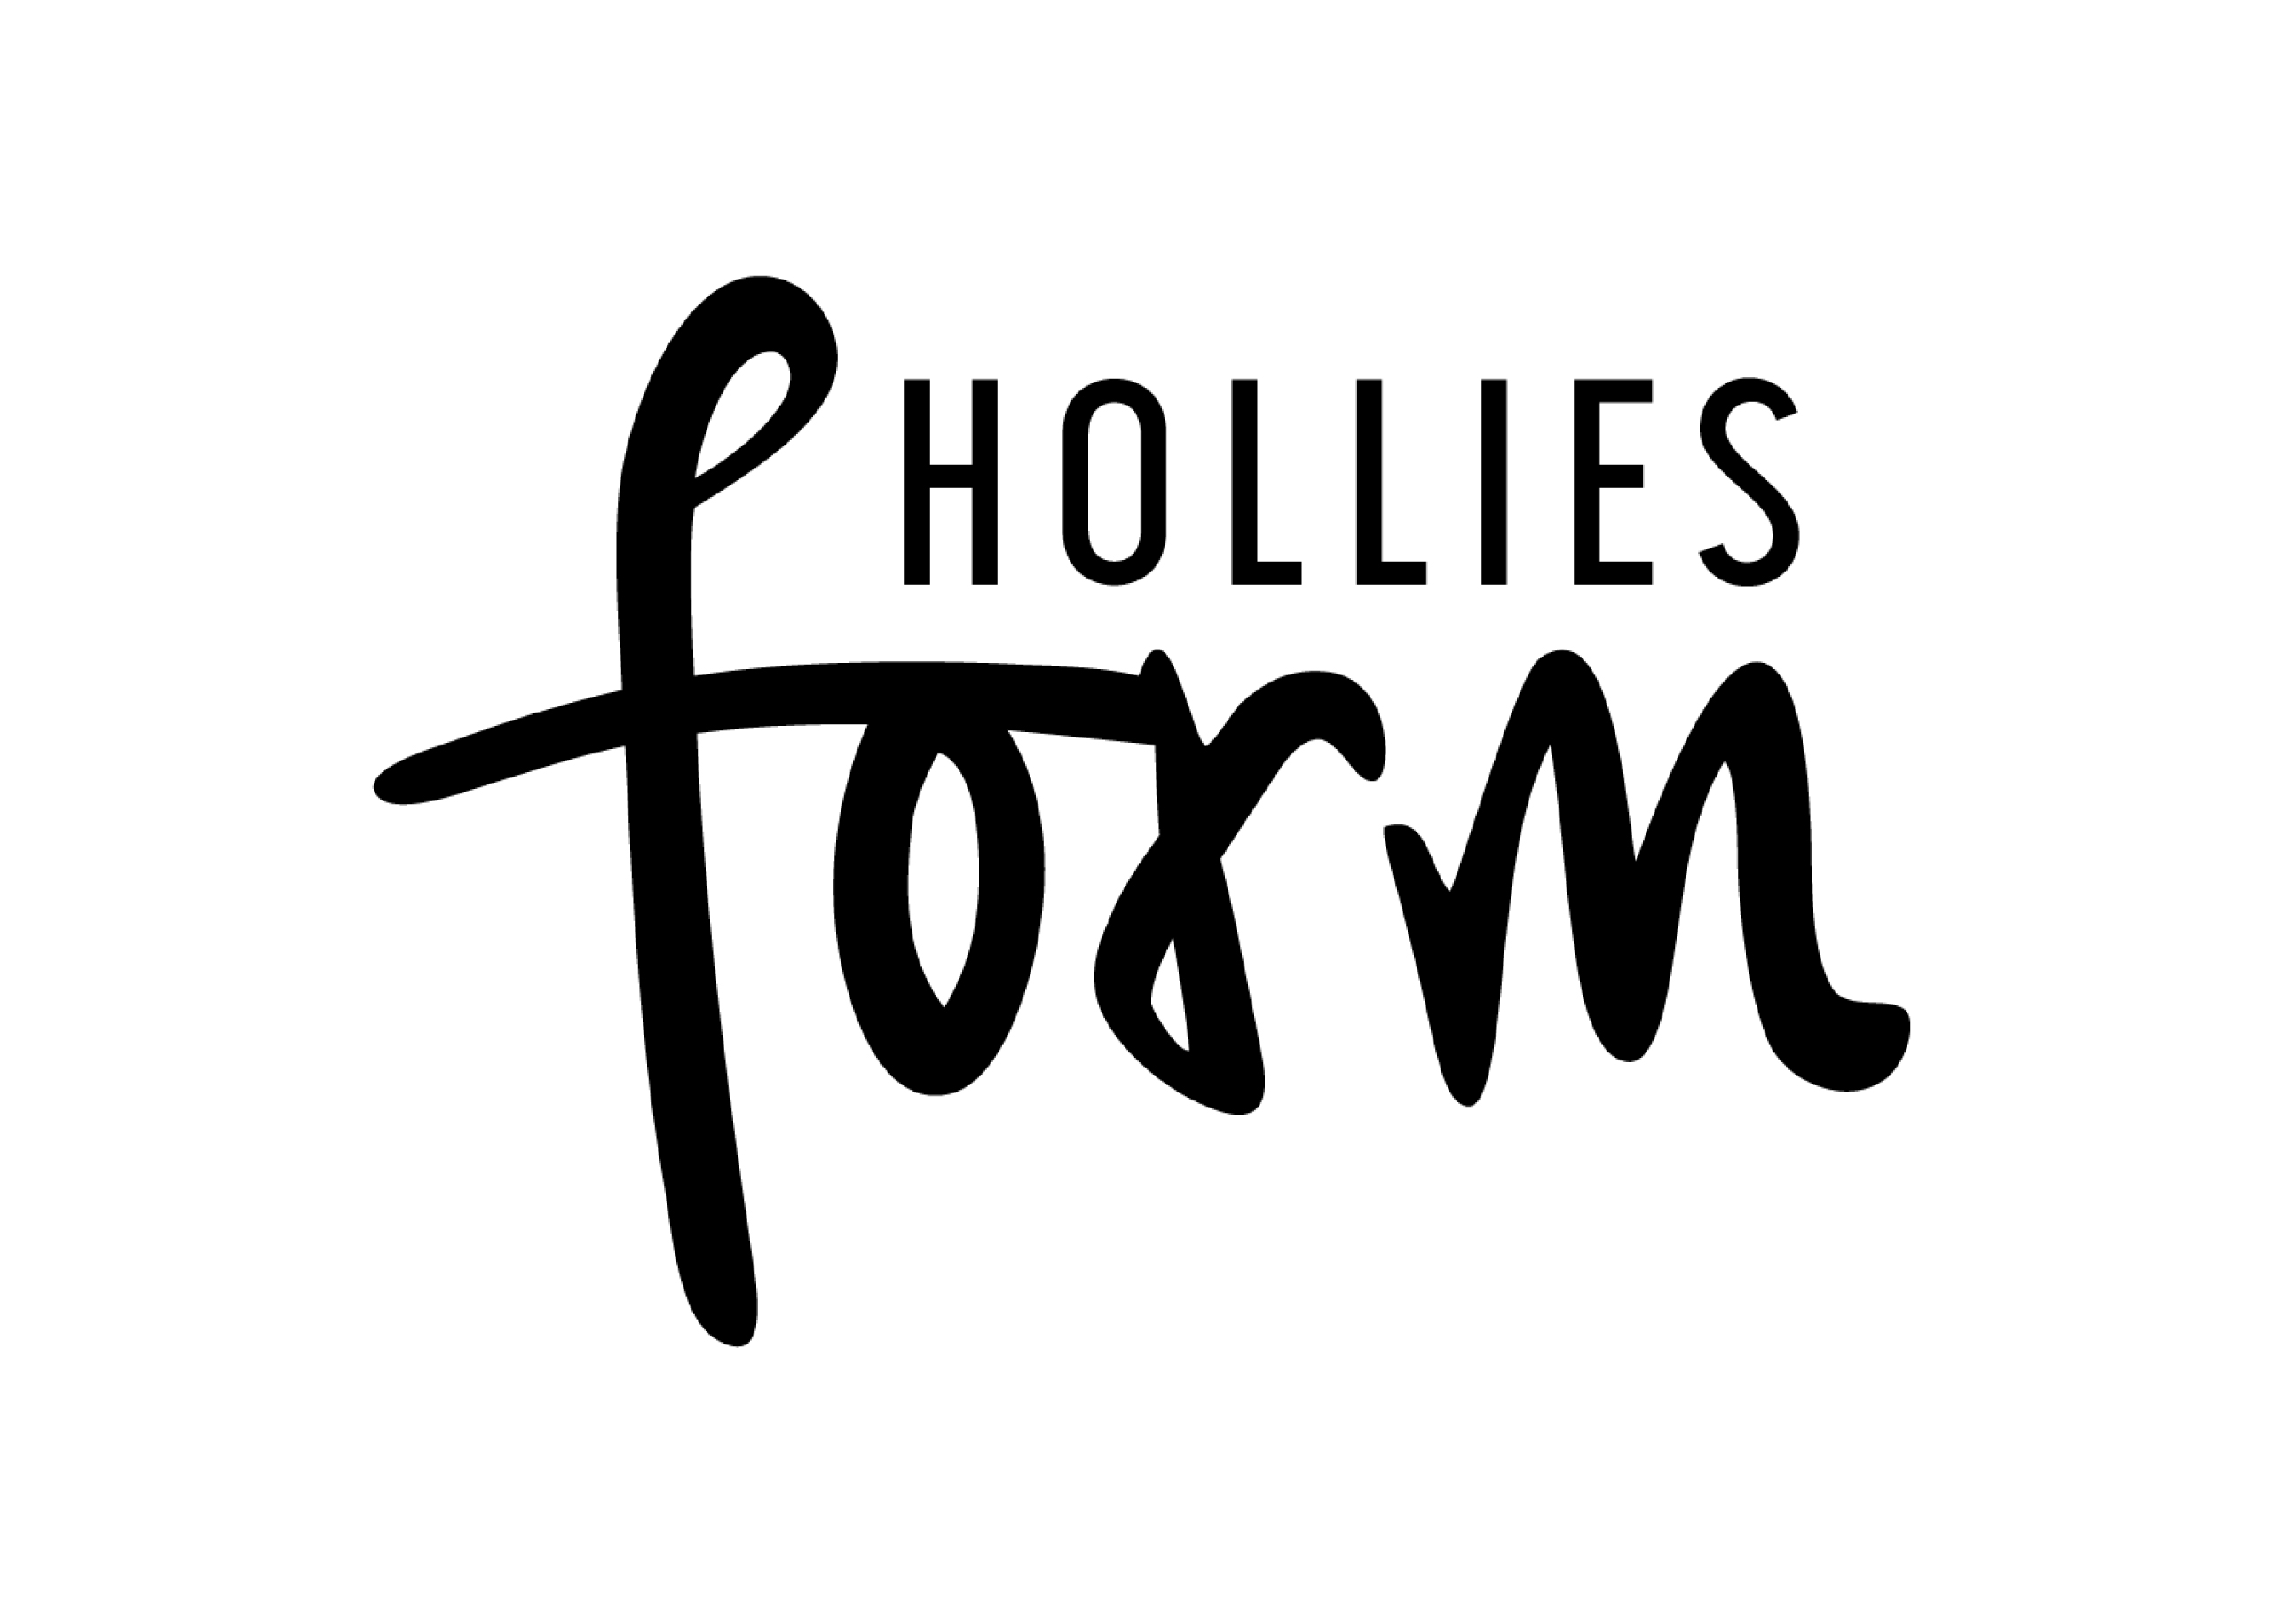 Hollies Form